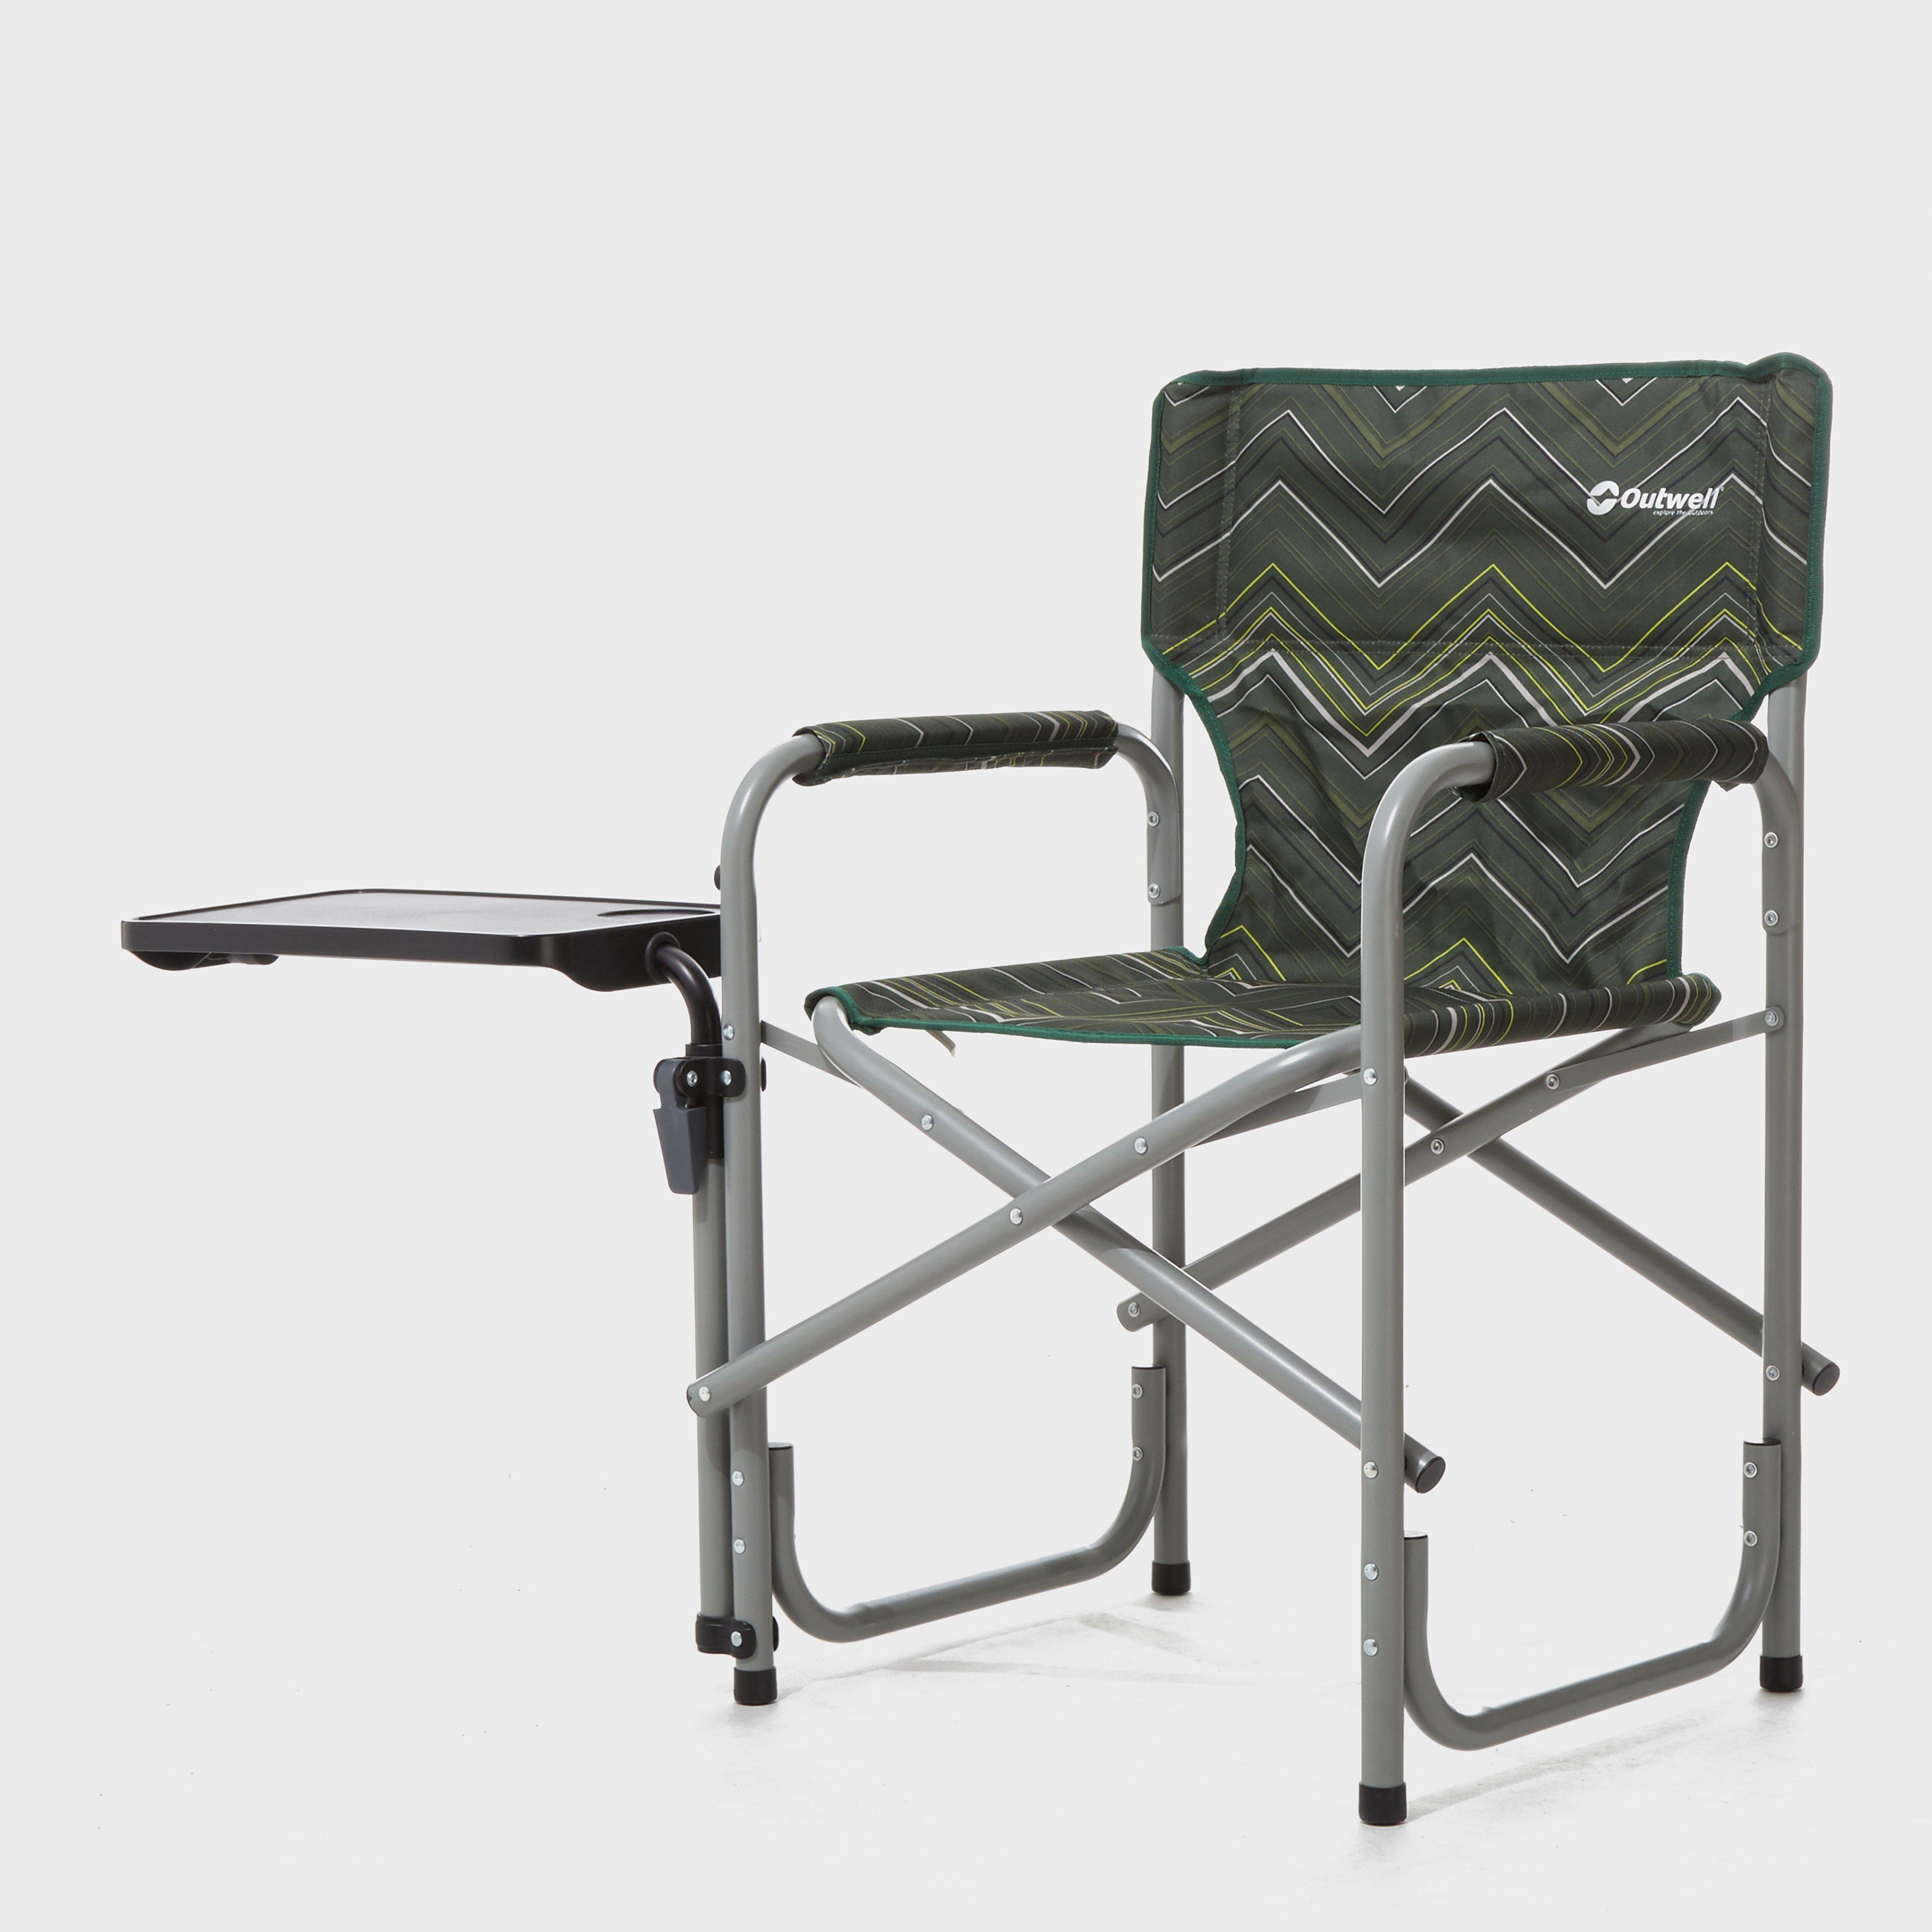 Outwell Chino Hills Chair With Side Table Tent Buyer